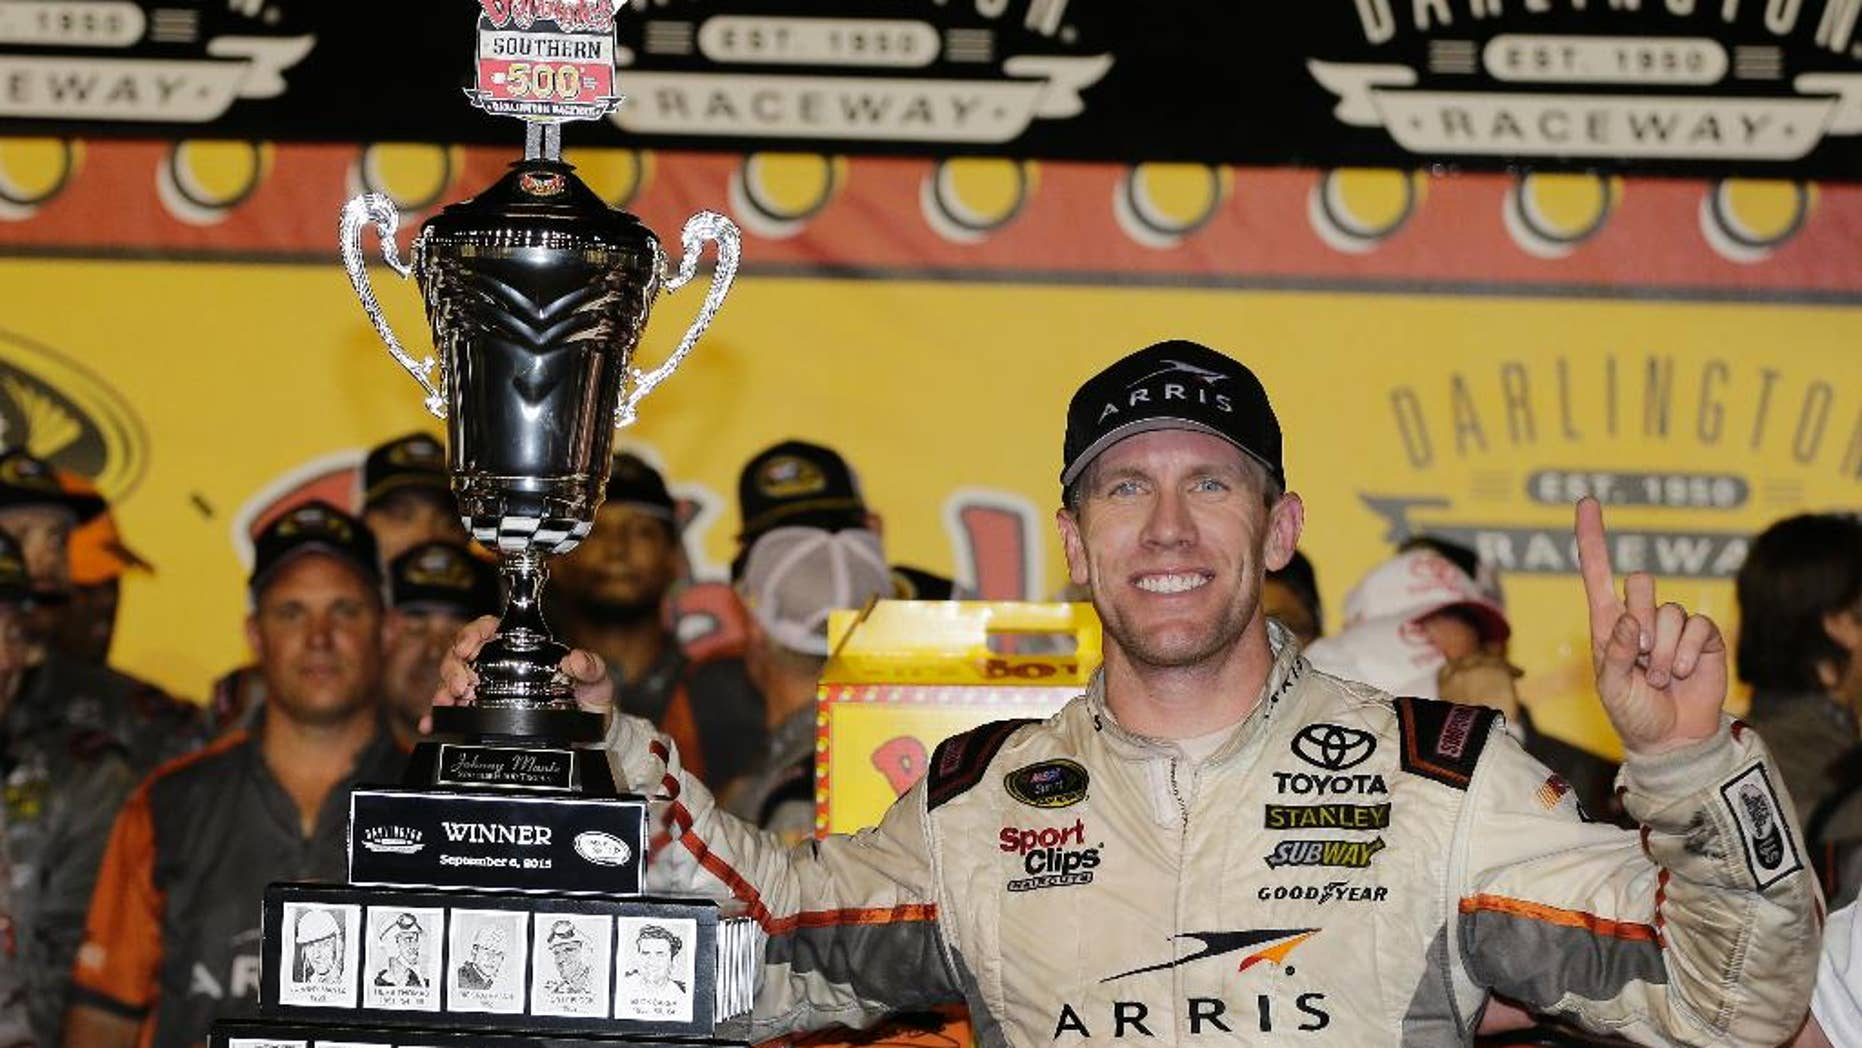 Carl Edwards celebrates in victory lane after winning a NASCAR Sprint Cup auto race at Darlington Raceway in Darlington, S.C., Monday, Sept. 7, 2015. (AP Photo/Terry Renna)